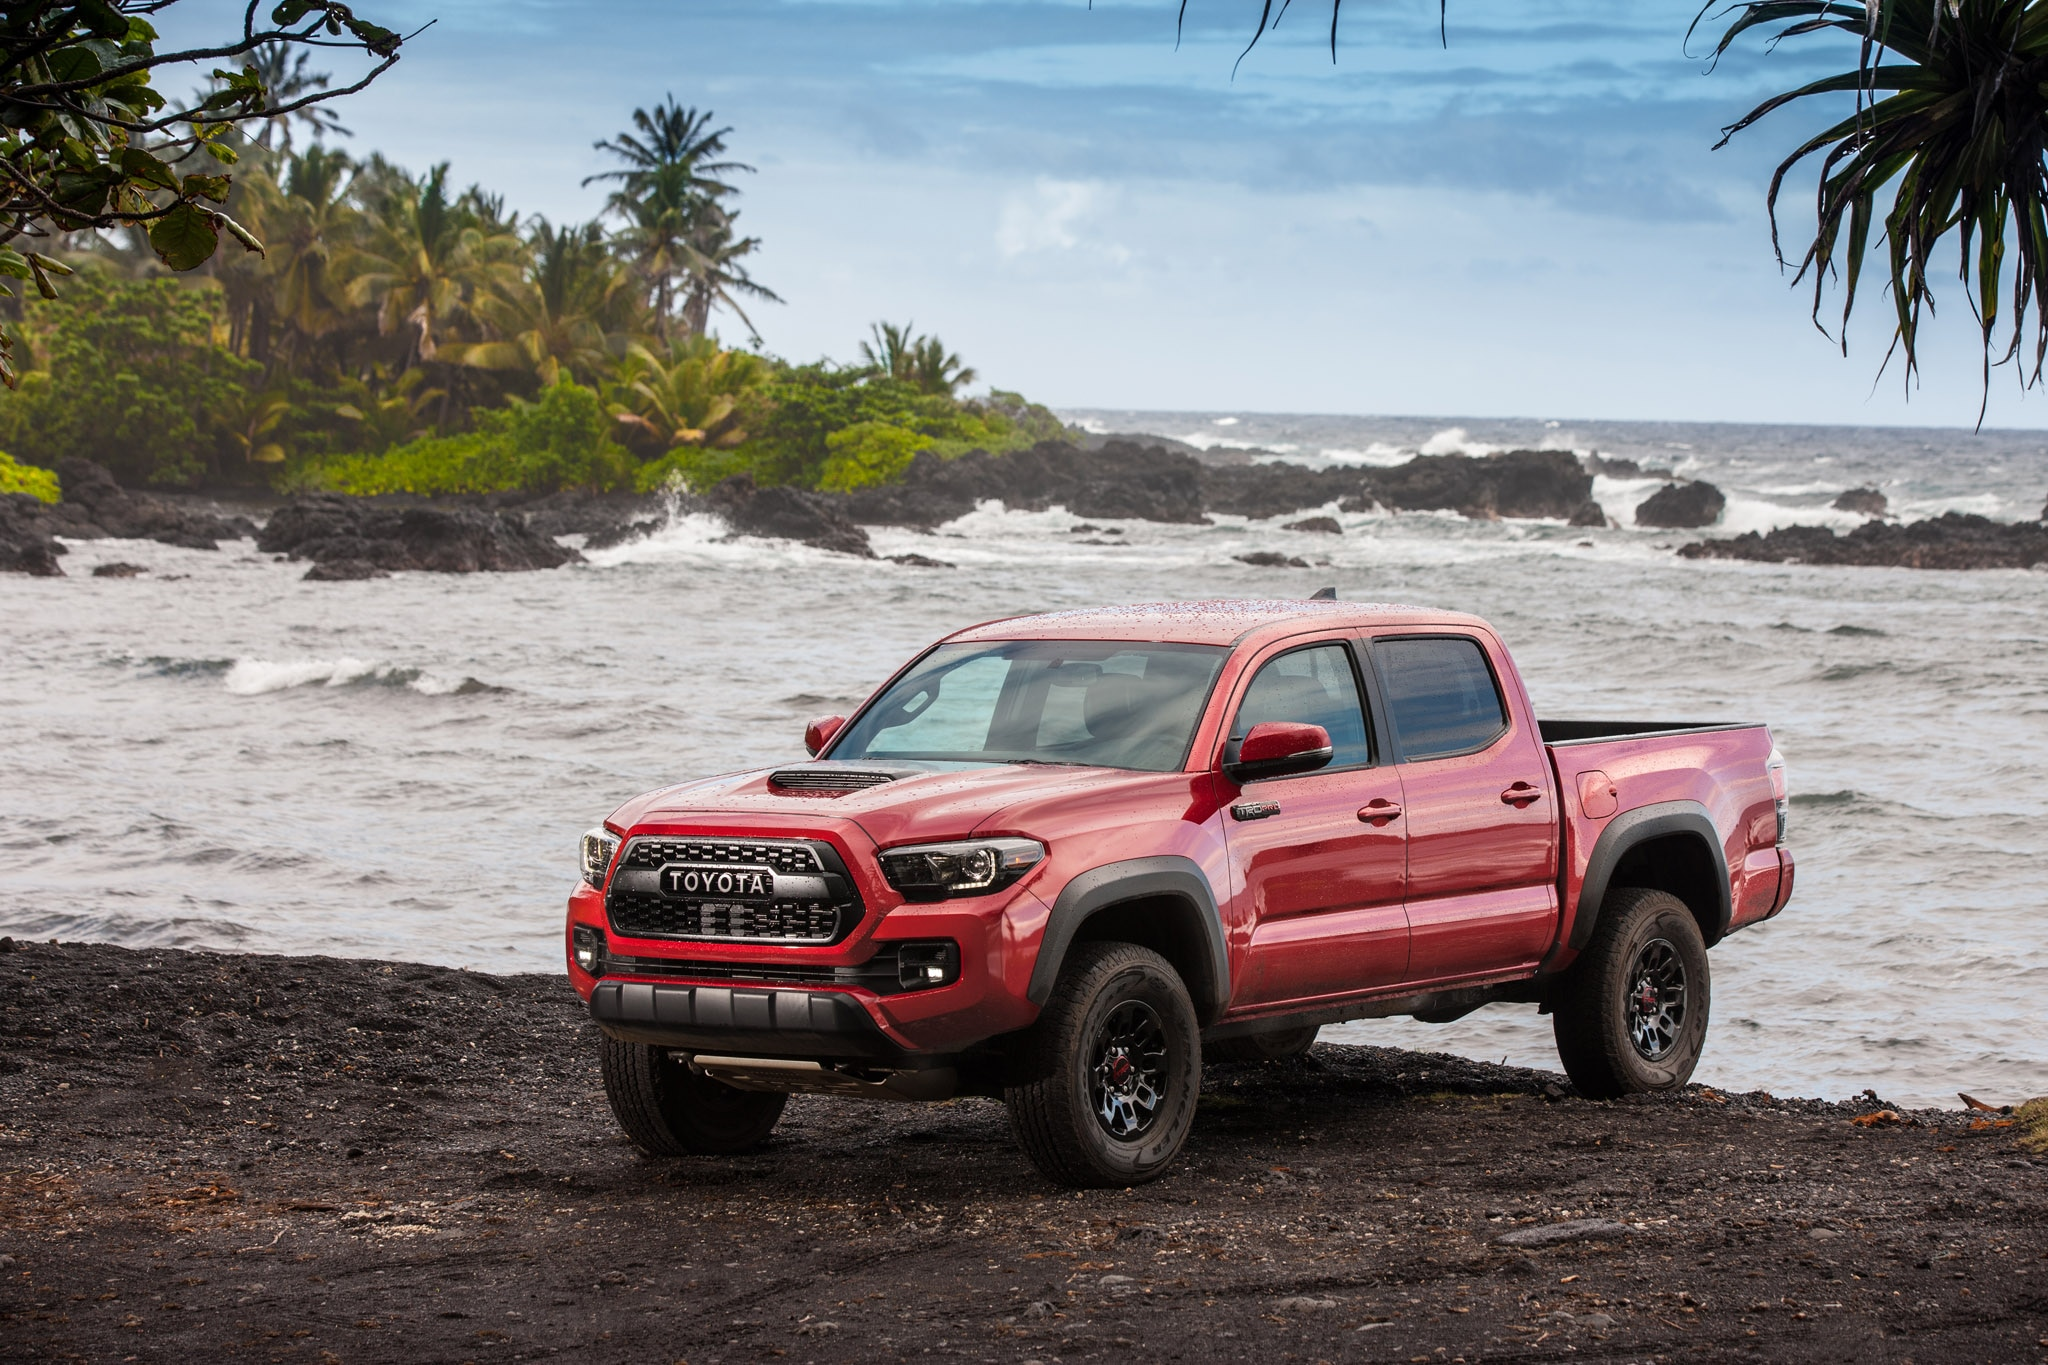 2017 Tacoma Trd Sport Price >> 2017 Toyota Tacoma TRD Pro First Drive Review | Automobile Magazine